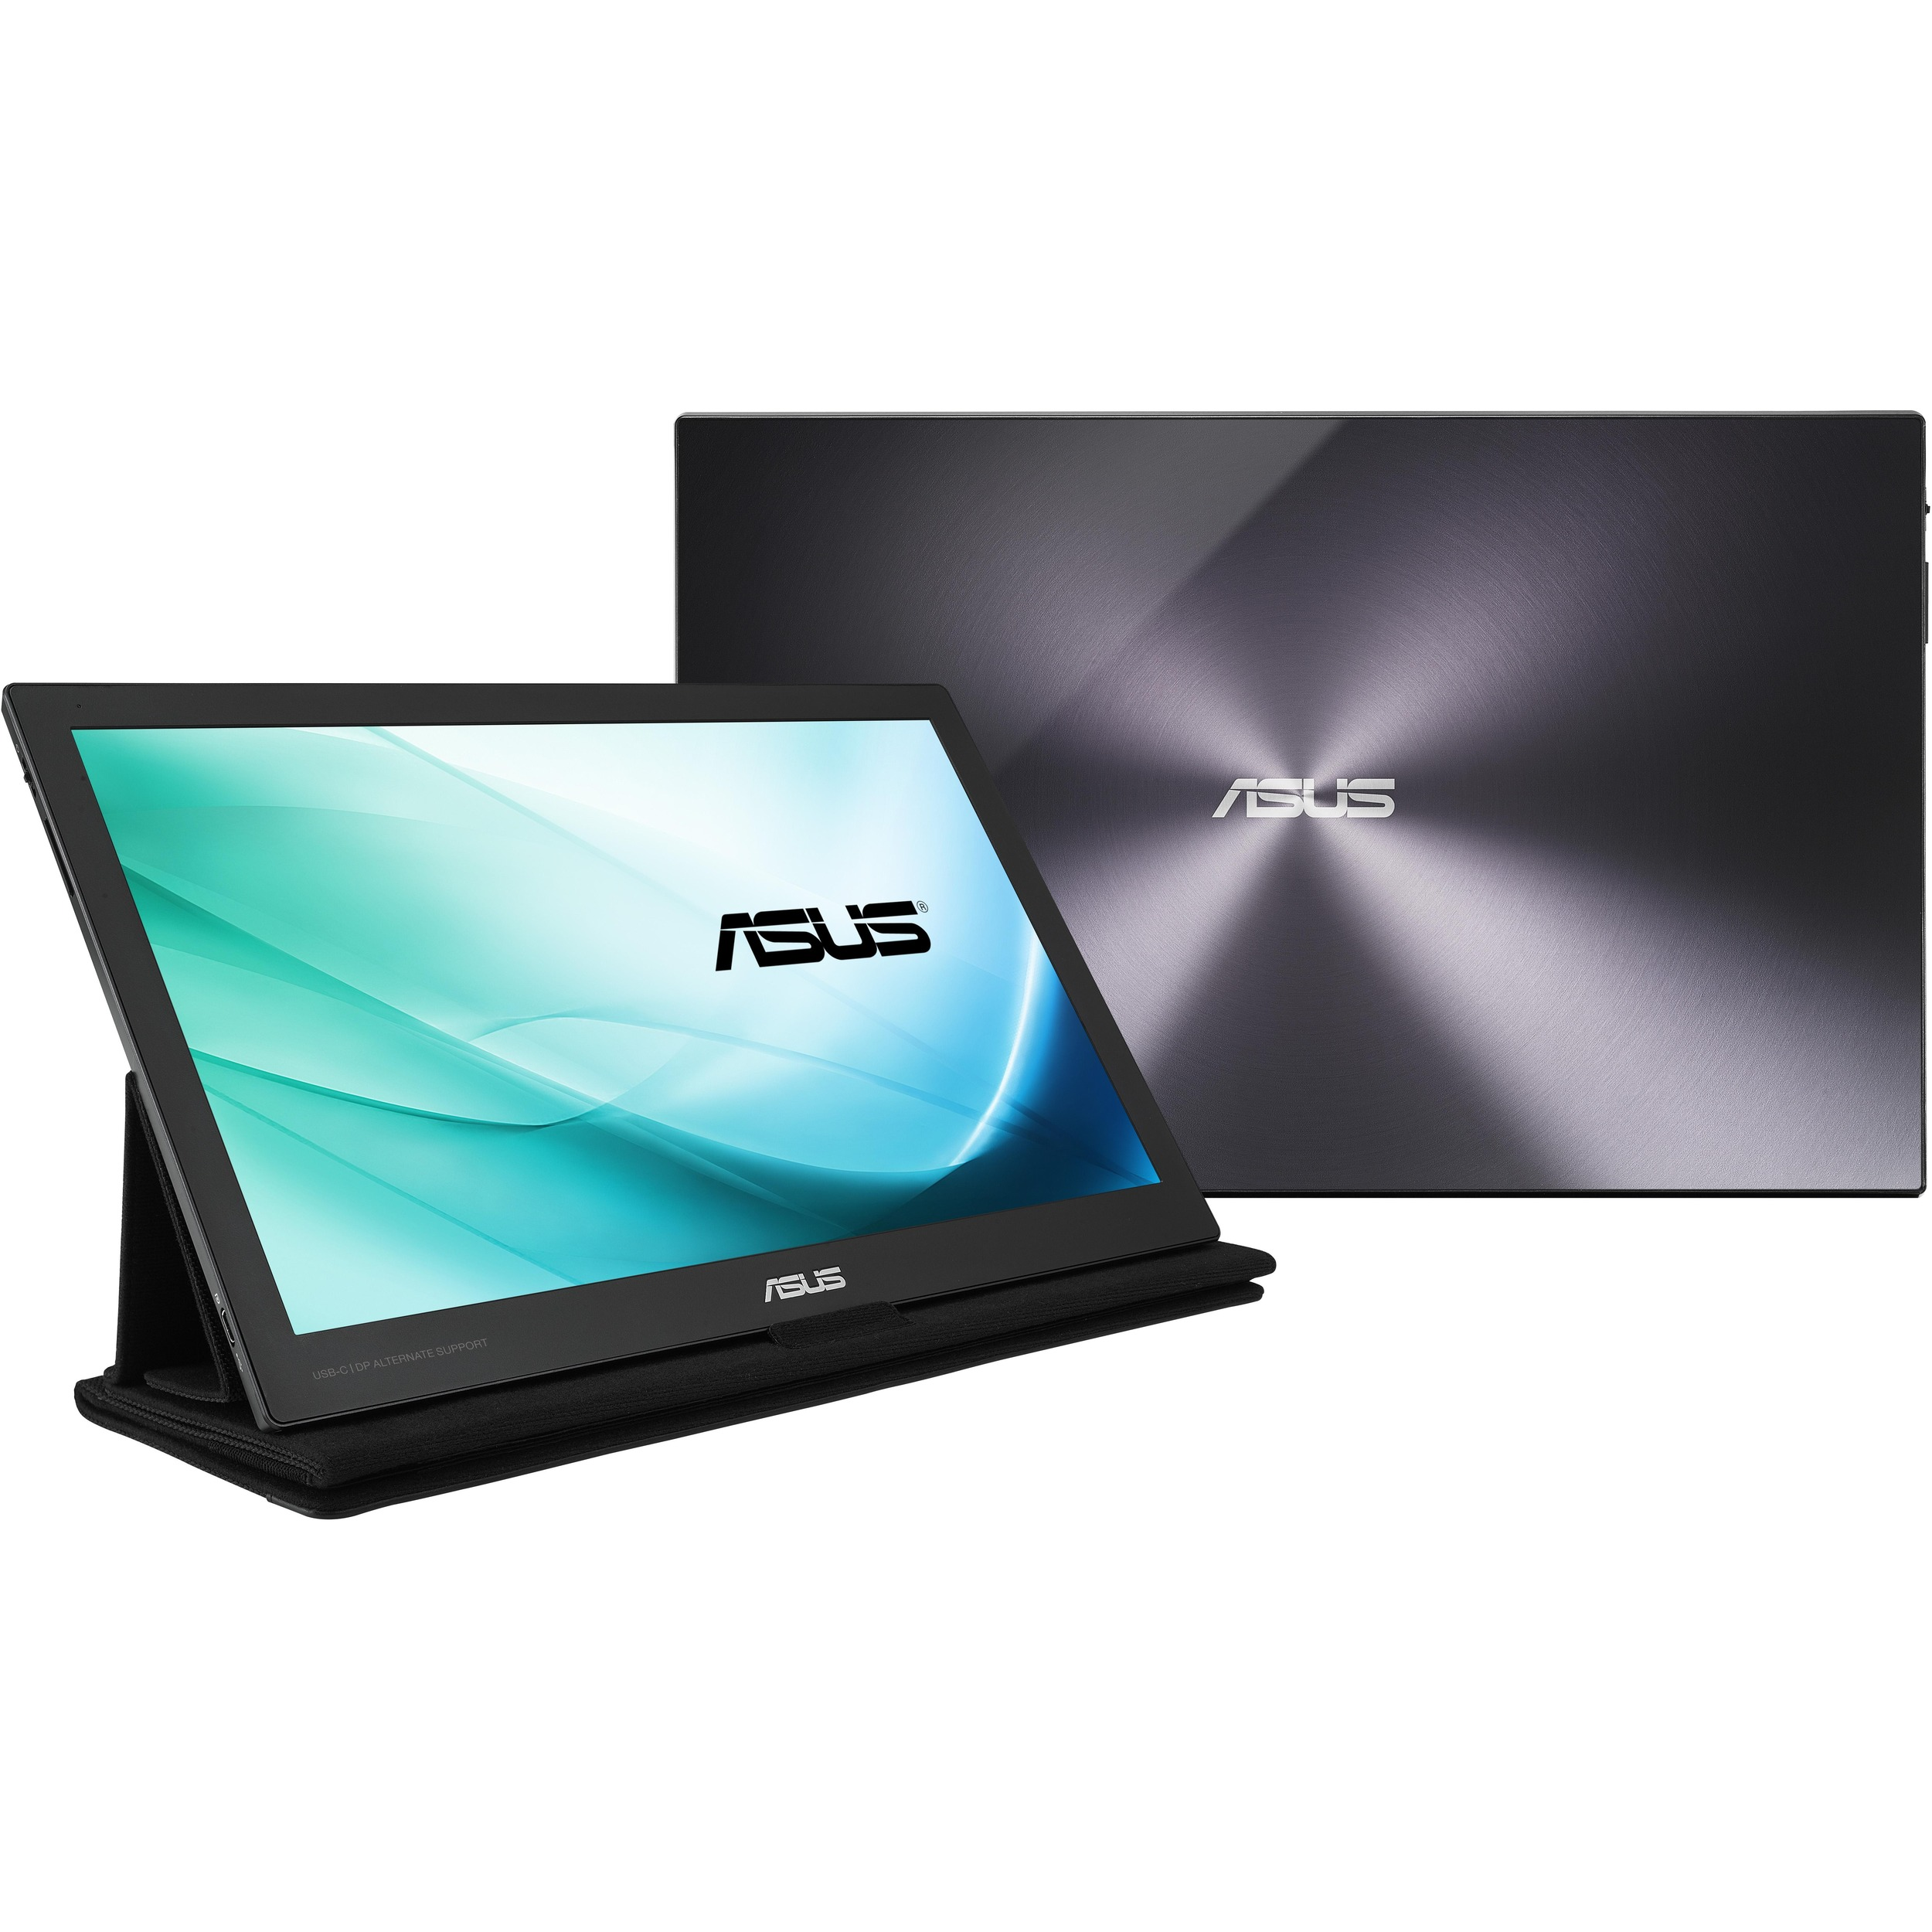 Asus MB169Cplus  15.6And#34; Full HD LCD USB  Monitor - 16:9